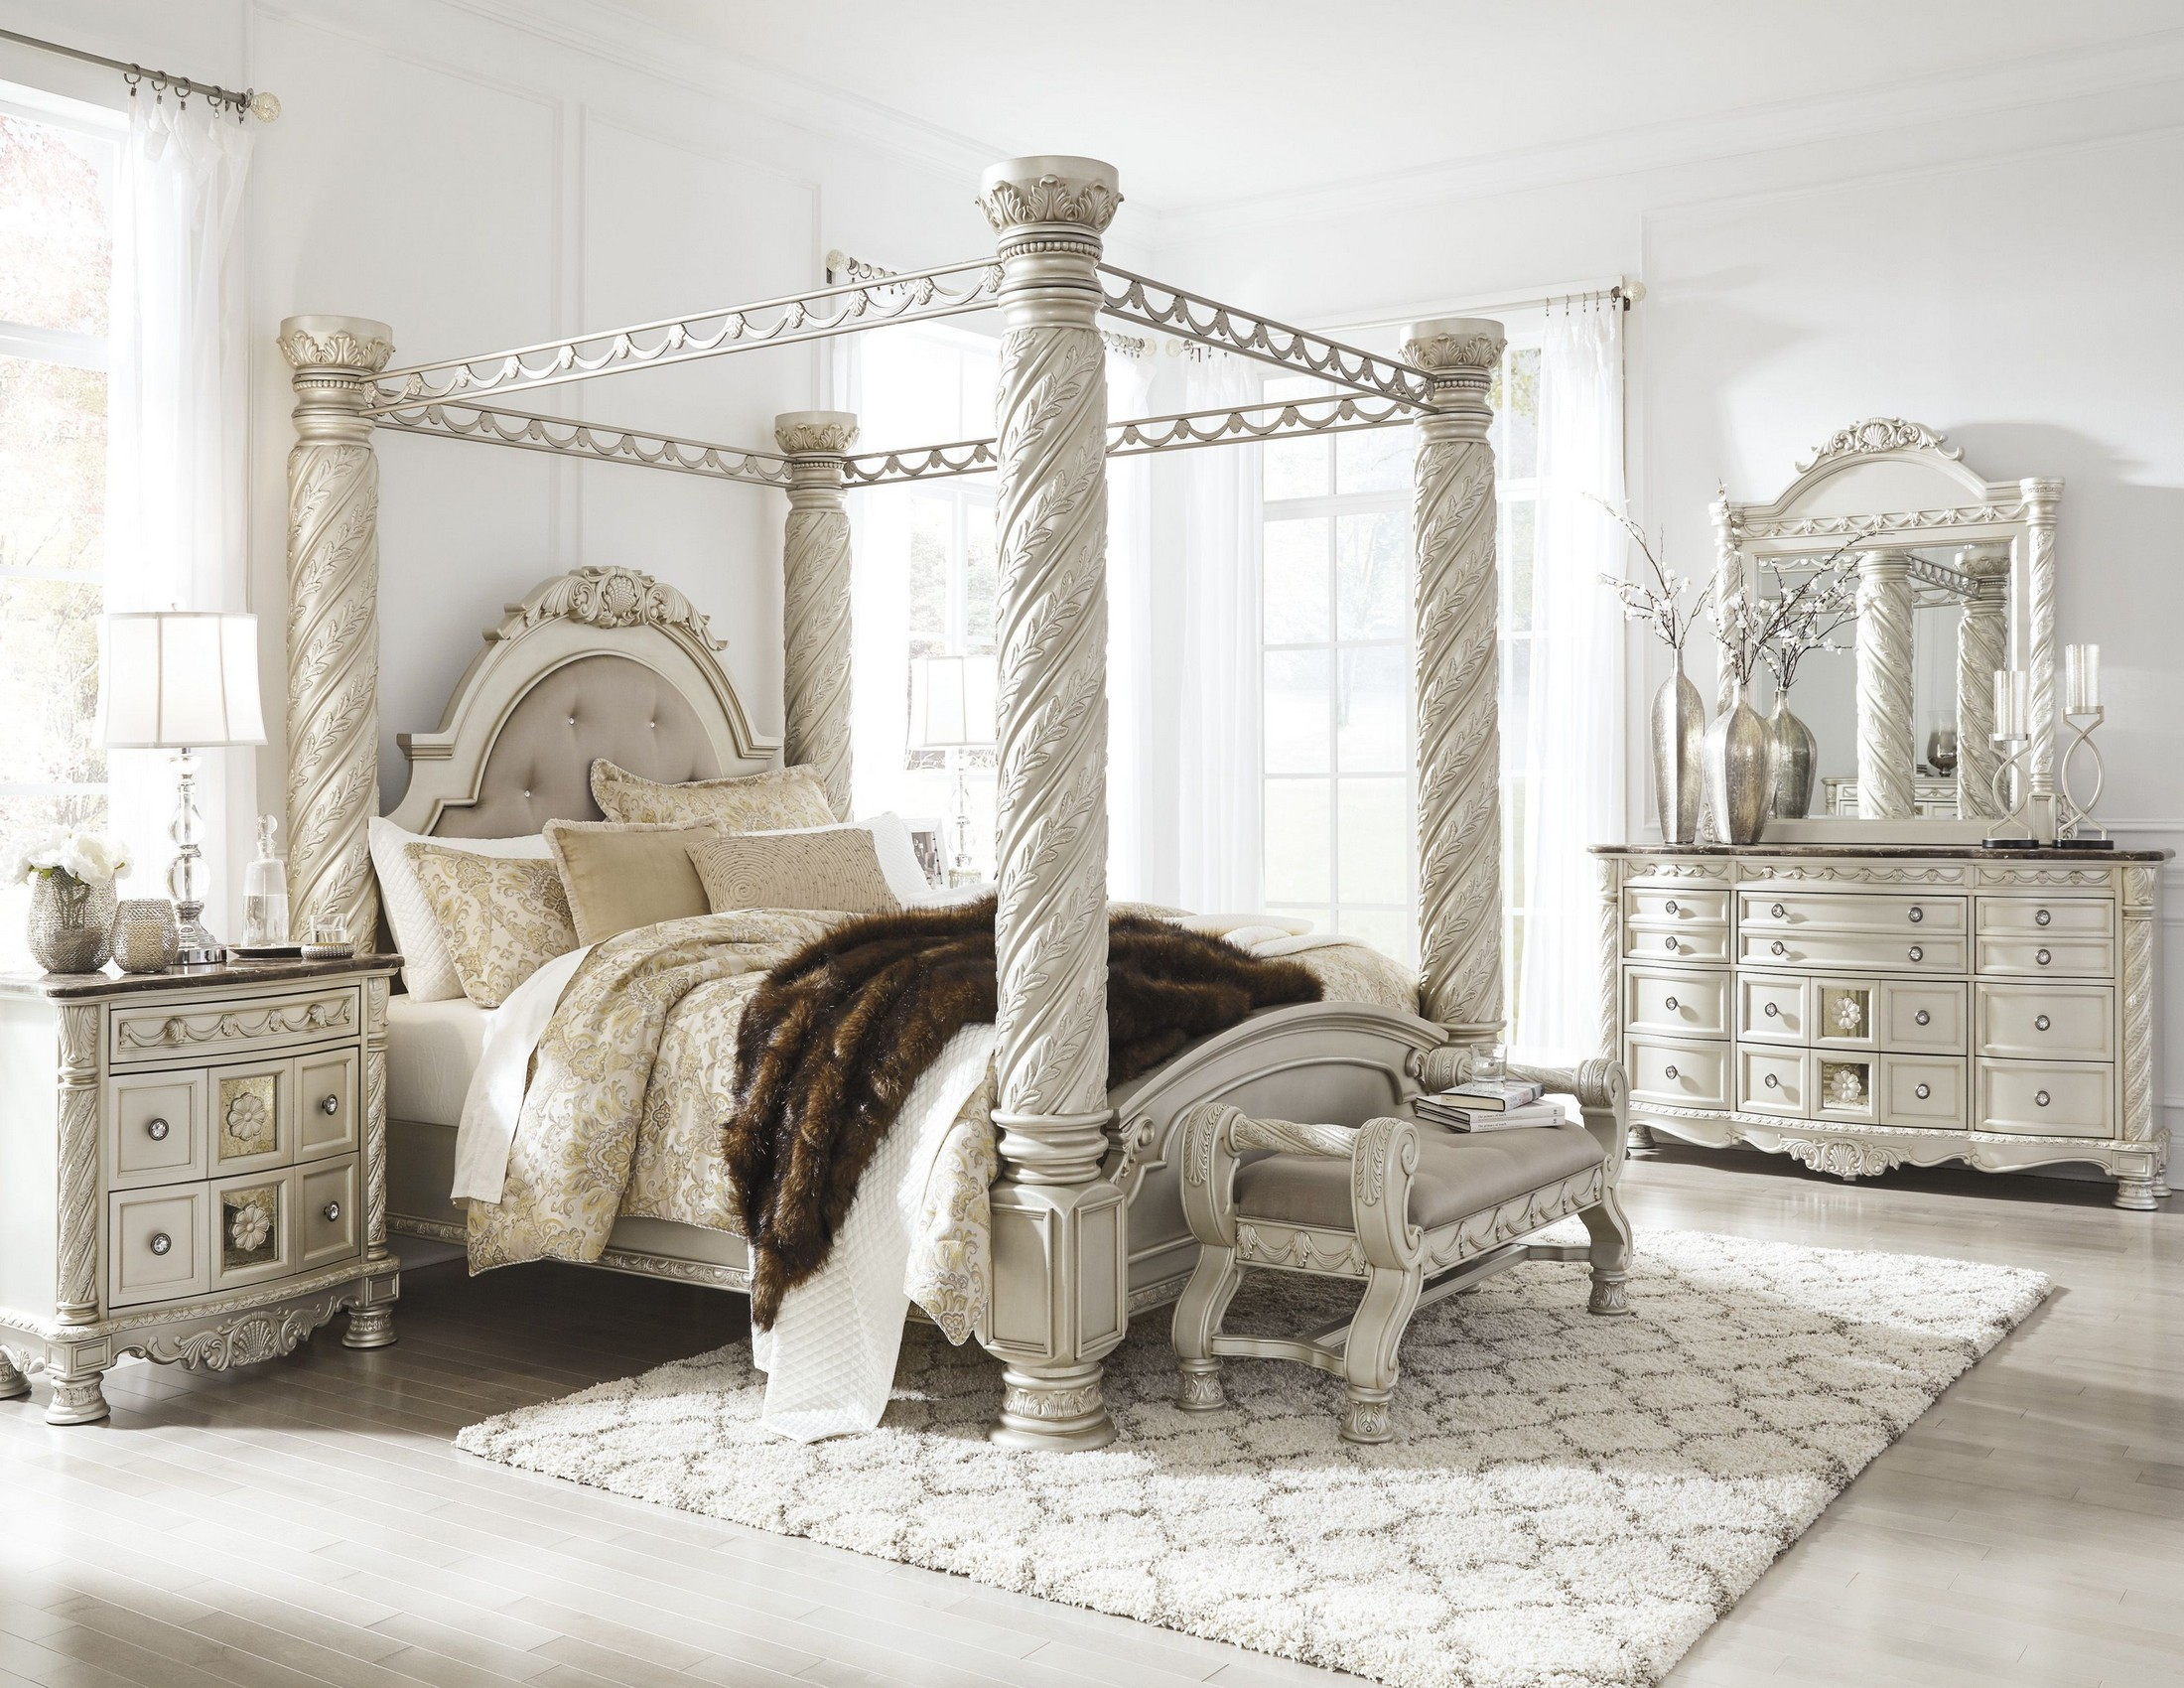 Charmant Cassimore North Shore Pearl Silver Upholstered Poster Canopy Bedroom Set  From Ashley | Coleman Furniture